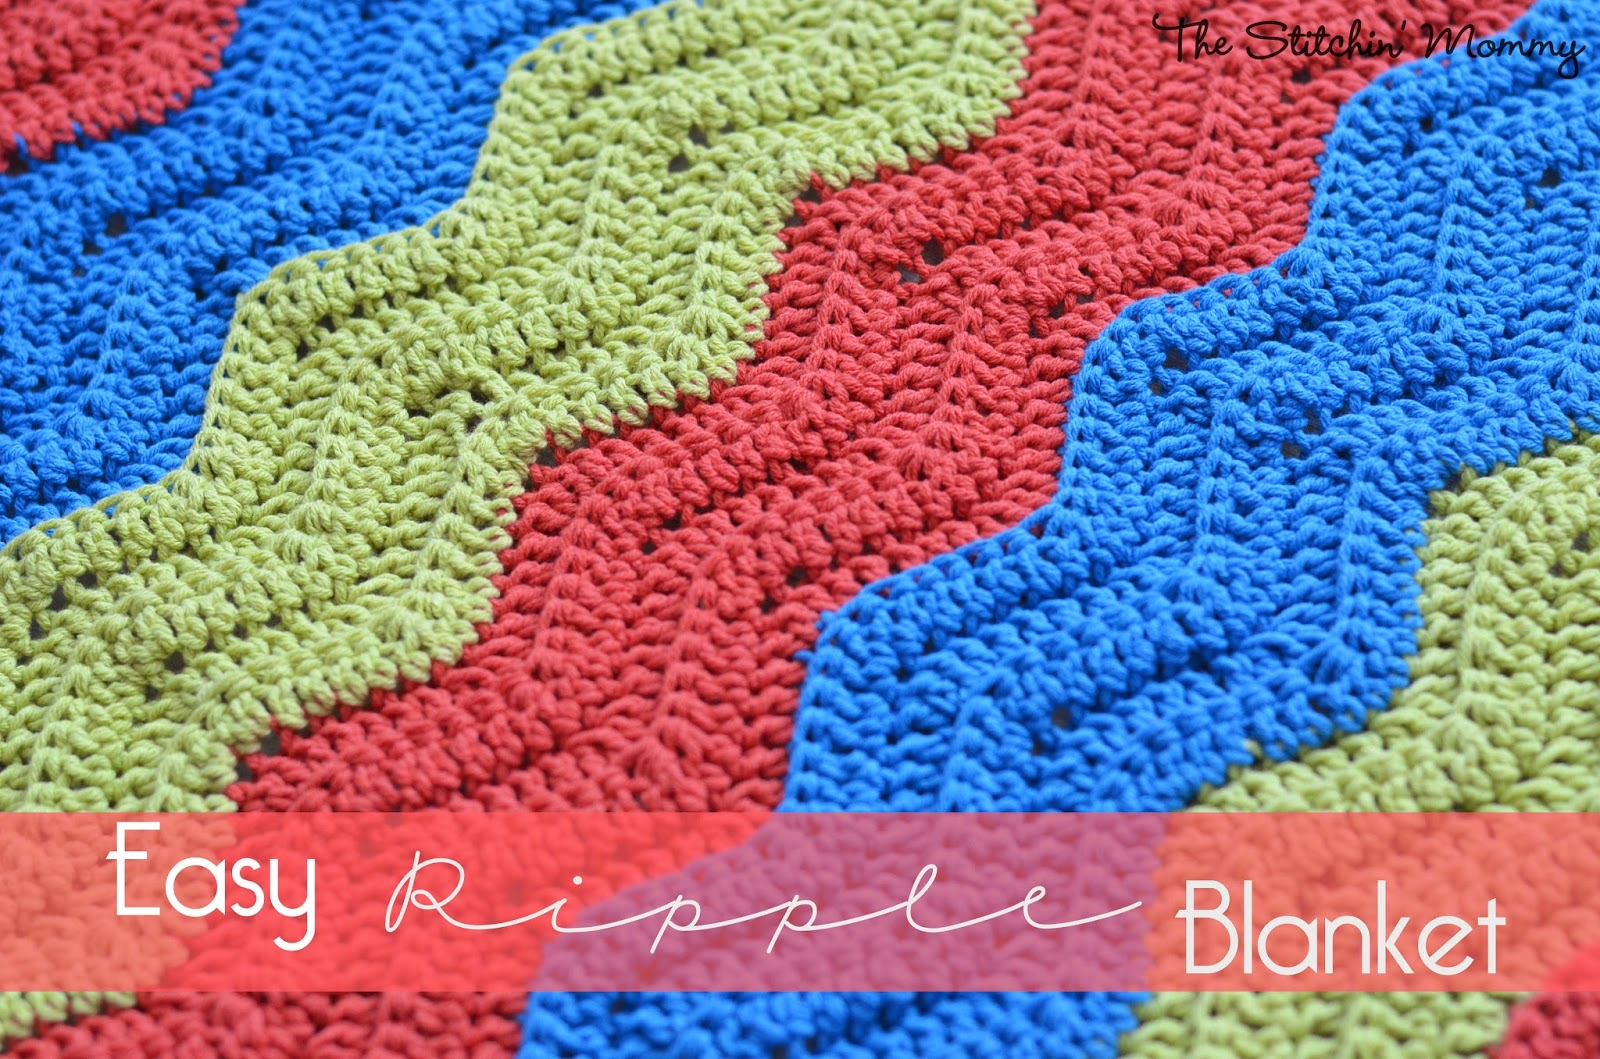 Crochet Ripple Blanket : Easy Crochet Ripple Blanket www.thestitchinmommy.com